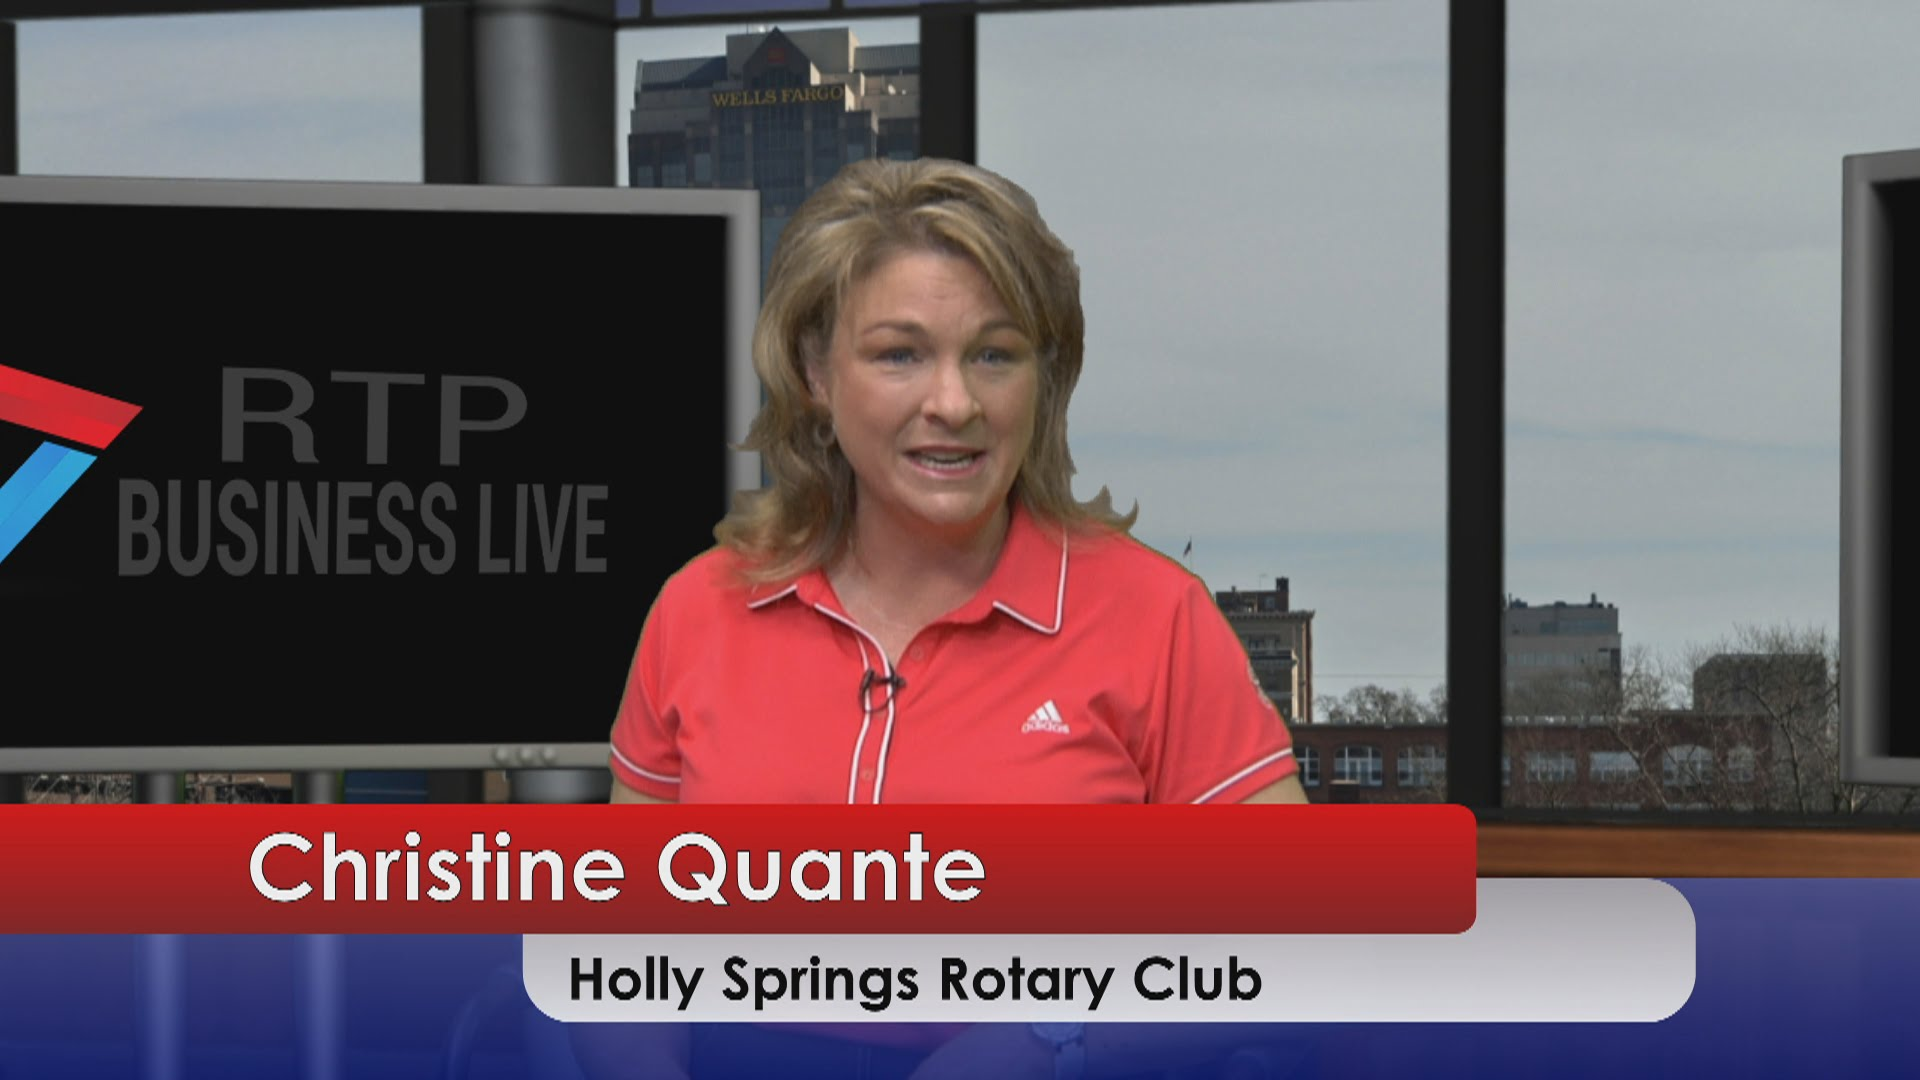 Holly Springs Rotary Golf Tournament – Christine Quante